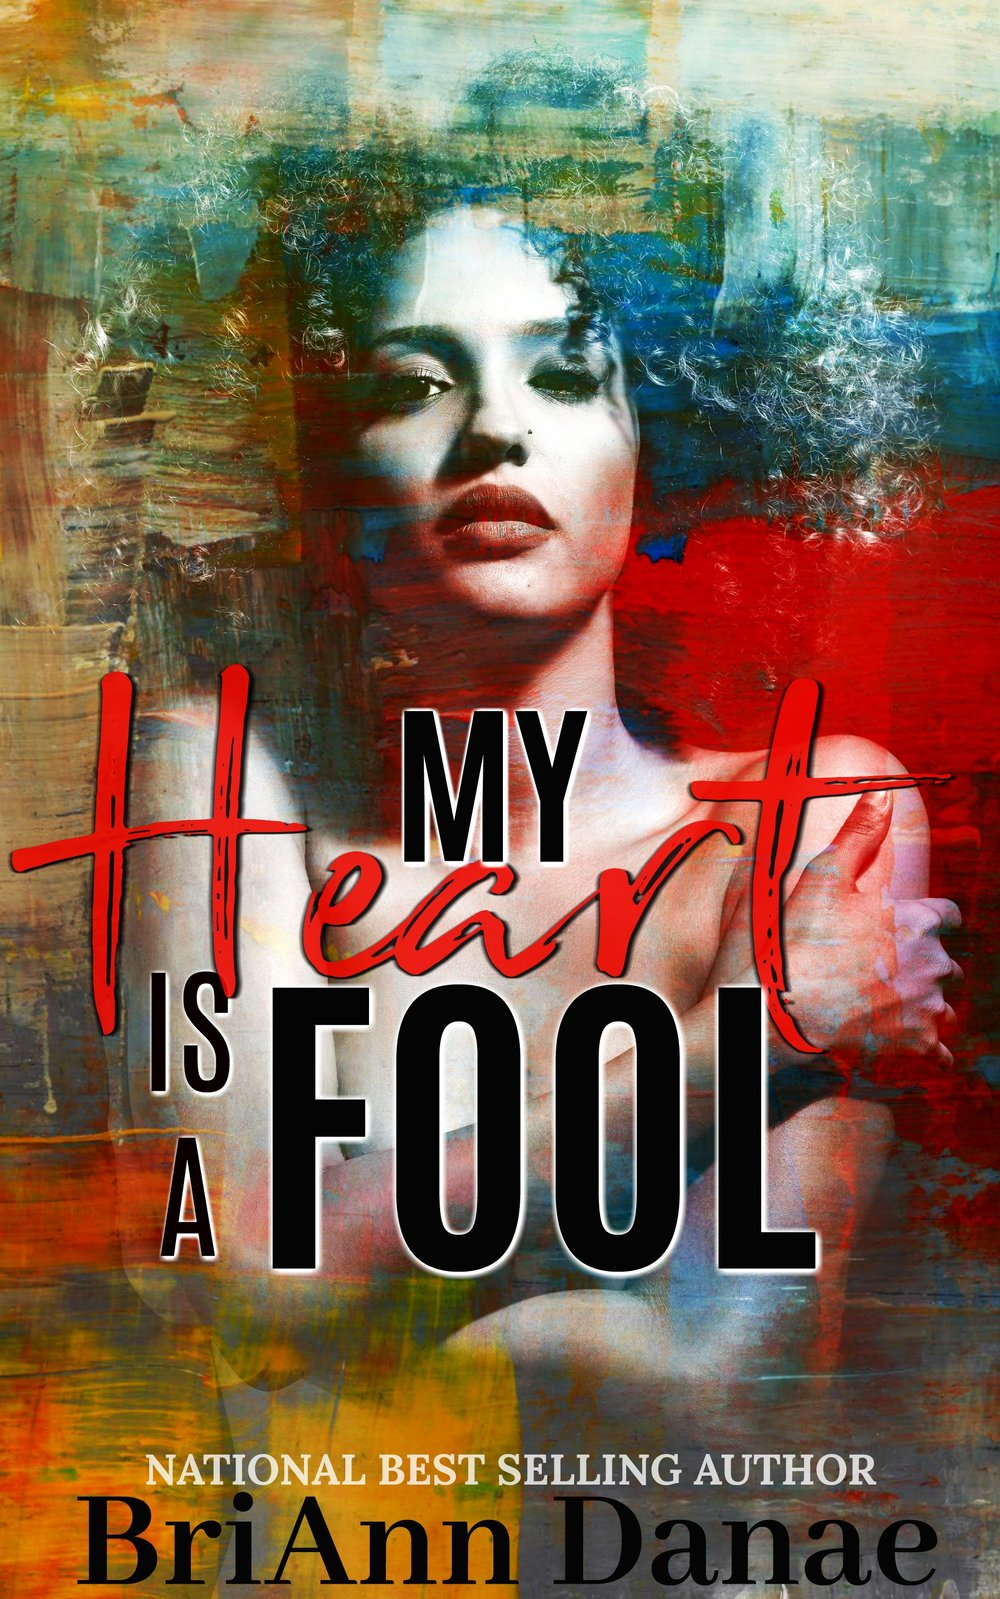 My Heart is a Fool (REAL) (1).jpg